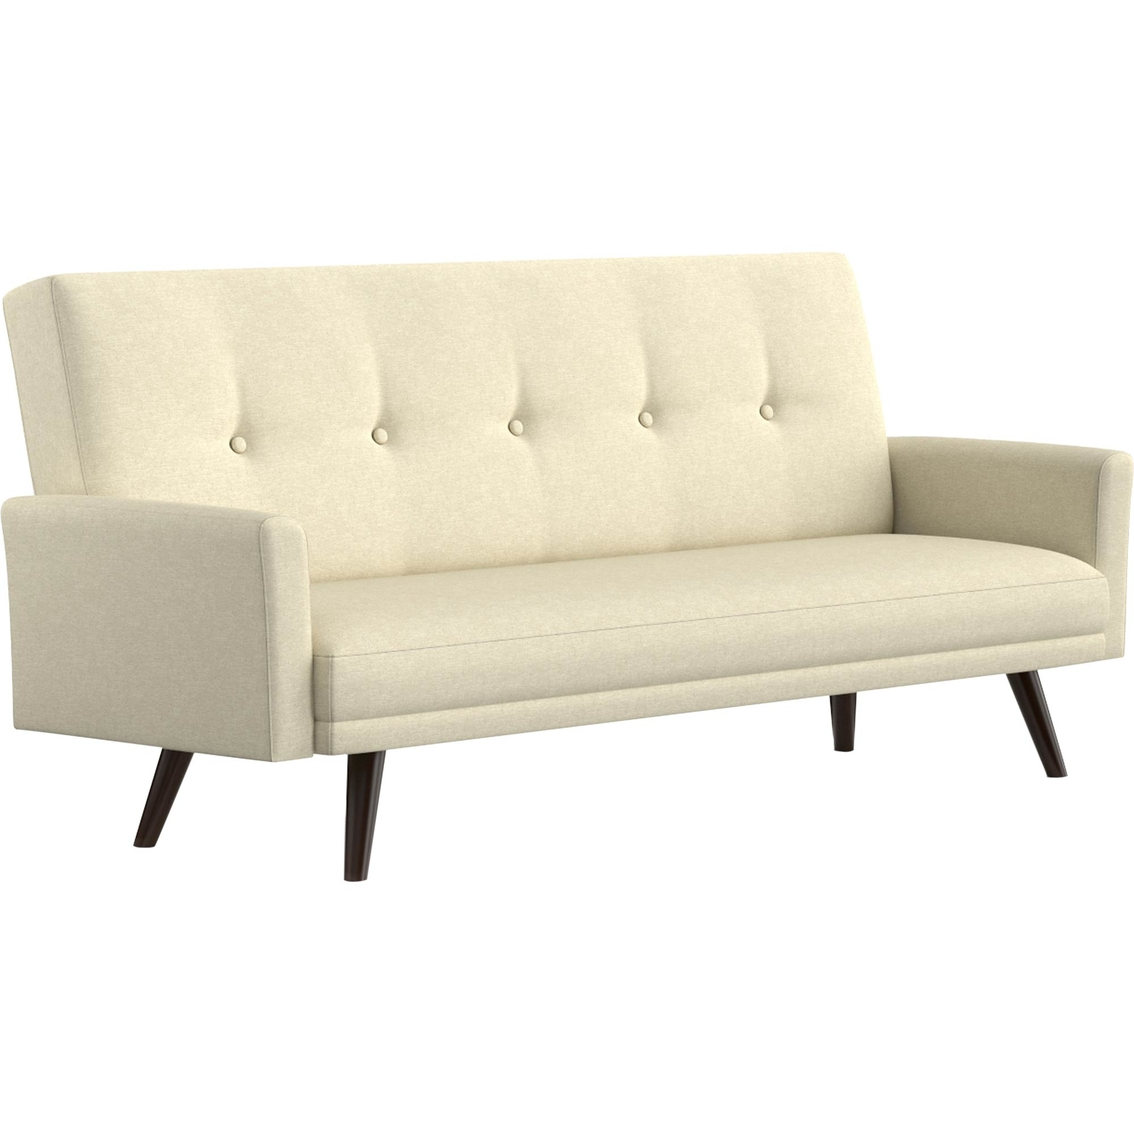 Futon Mattress Melbourne Handy Living Melbourne Futon Sofa Bed Sofas And Couches